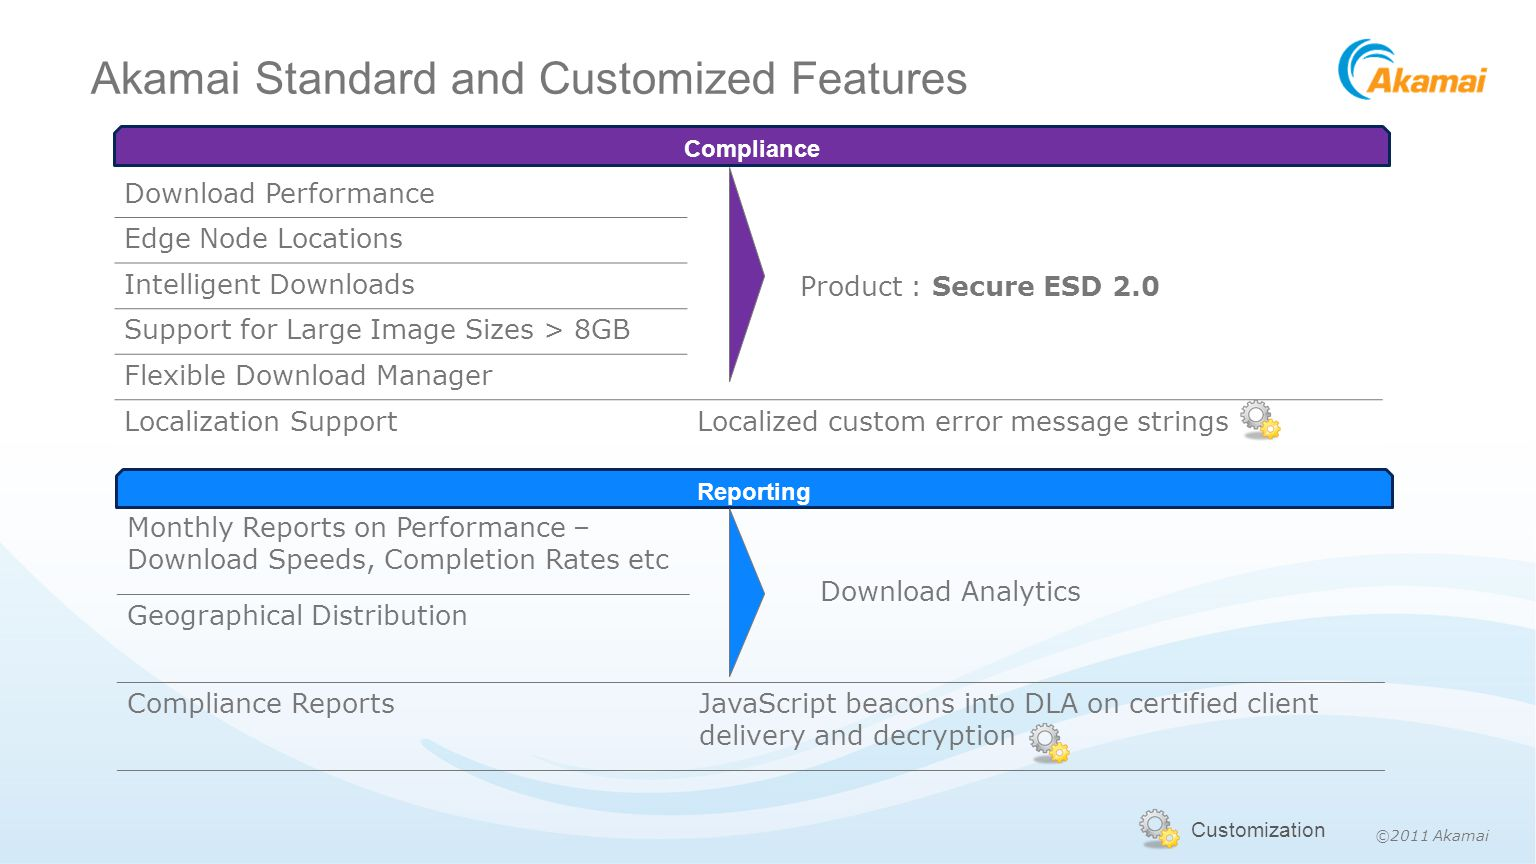 ©2011 Akamai Akamai Standard and Customized Features Customization Download Performance Product : Secure ESD 2.0 Edge Node Locations Intelligent Downloads Support for Large Image Sizes > 8GB Flexible Download Manager Localization SupportLocalized custom error message strings Compliance Monthly Reports on Performance – Download Speeds, Completion Rates etc Download Analytics Geographical Distribution Compliance ReportsJavaScript beacons into DLA on certified client delivery and decryption Reporting